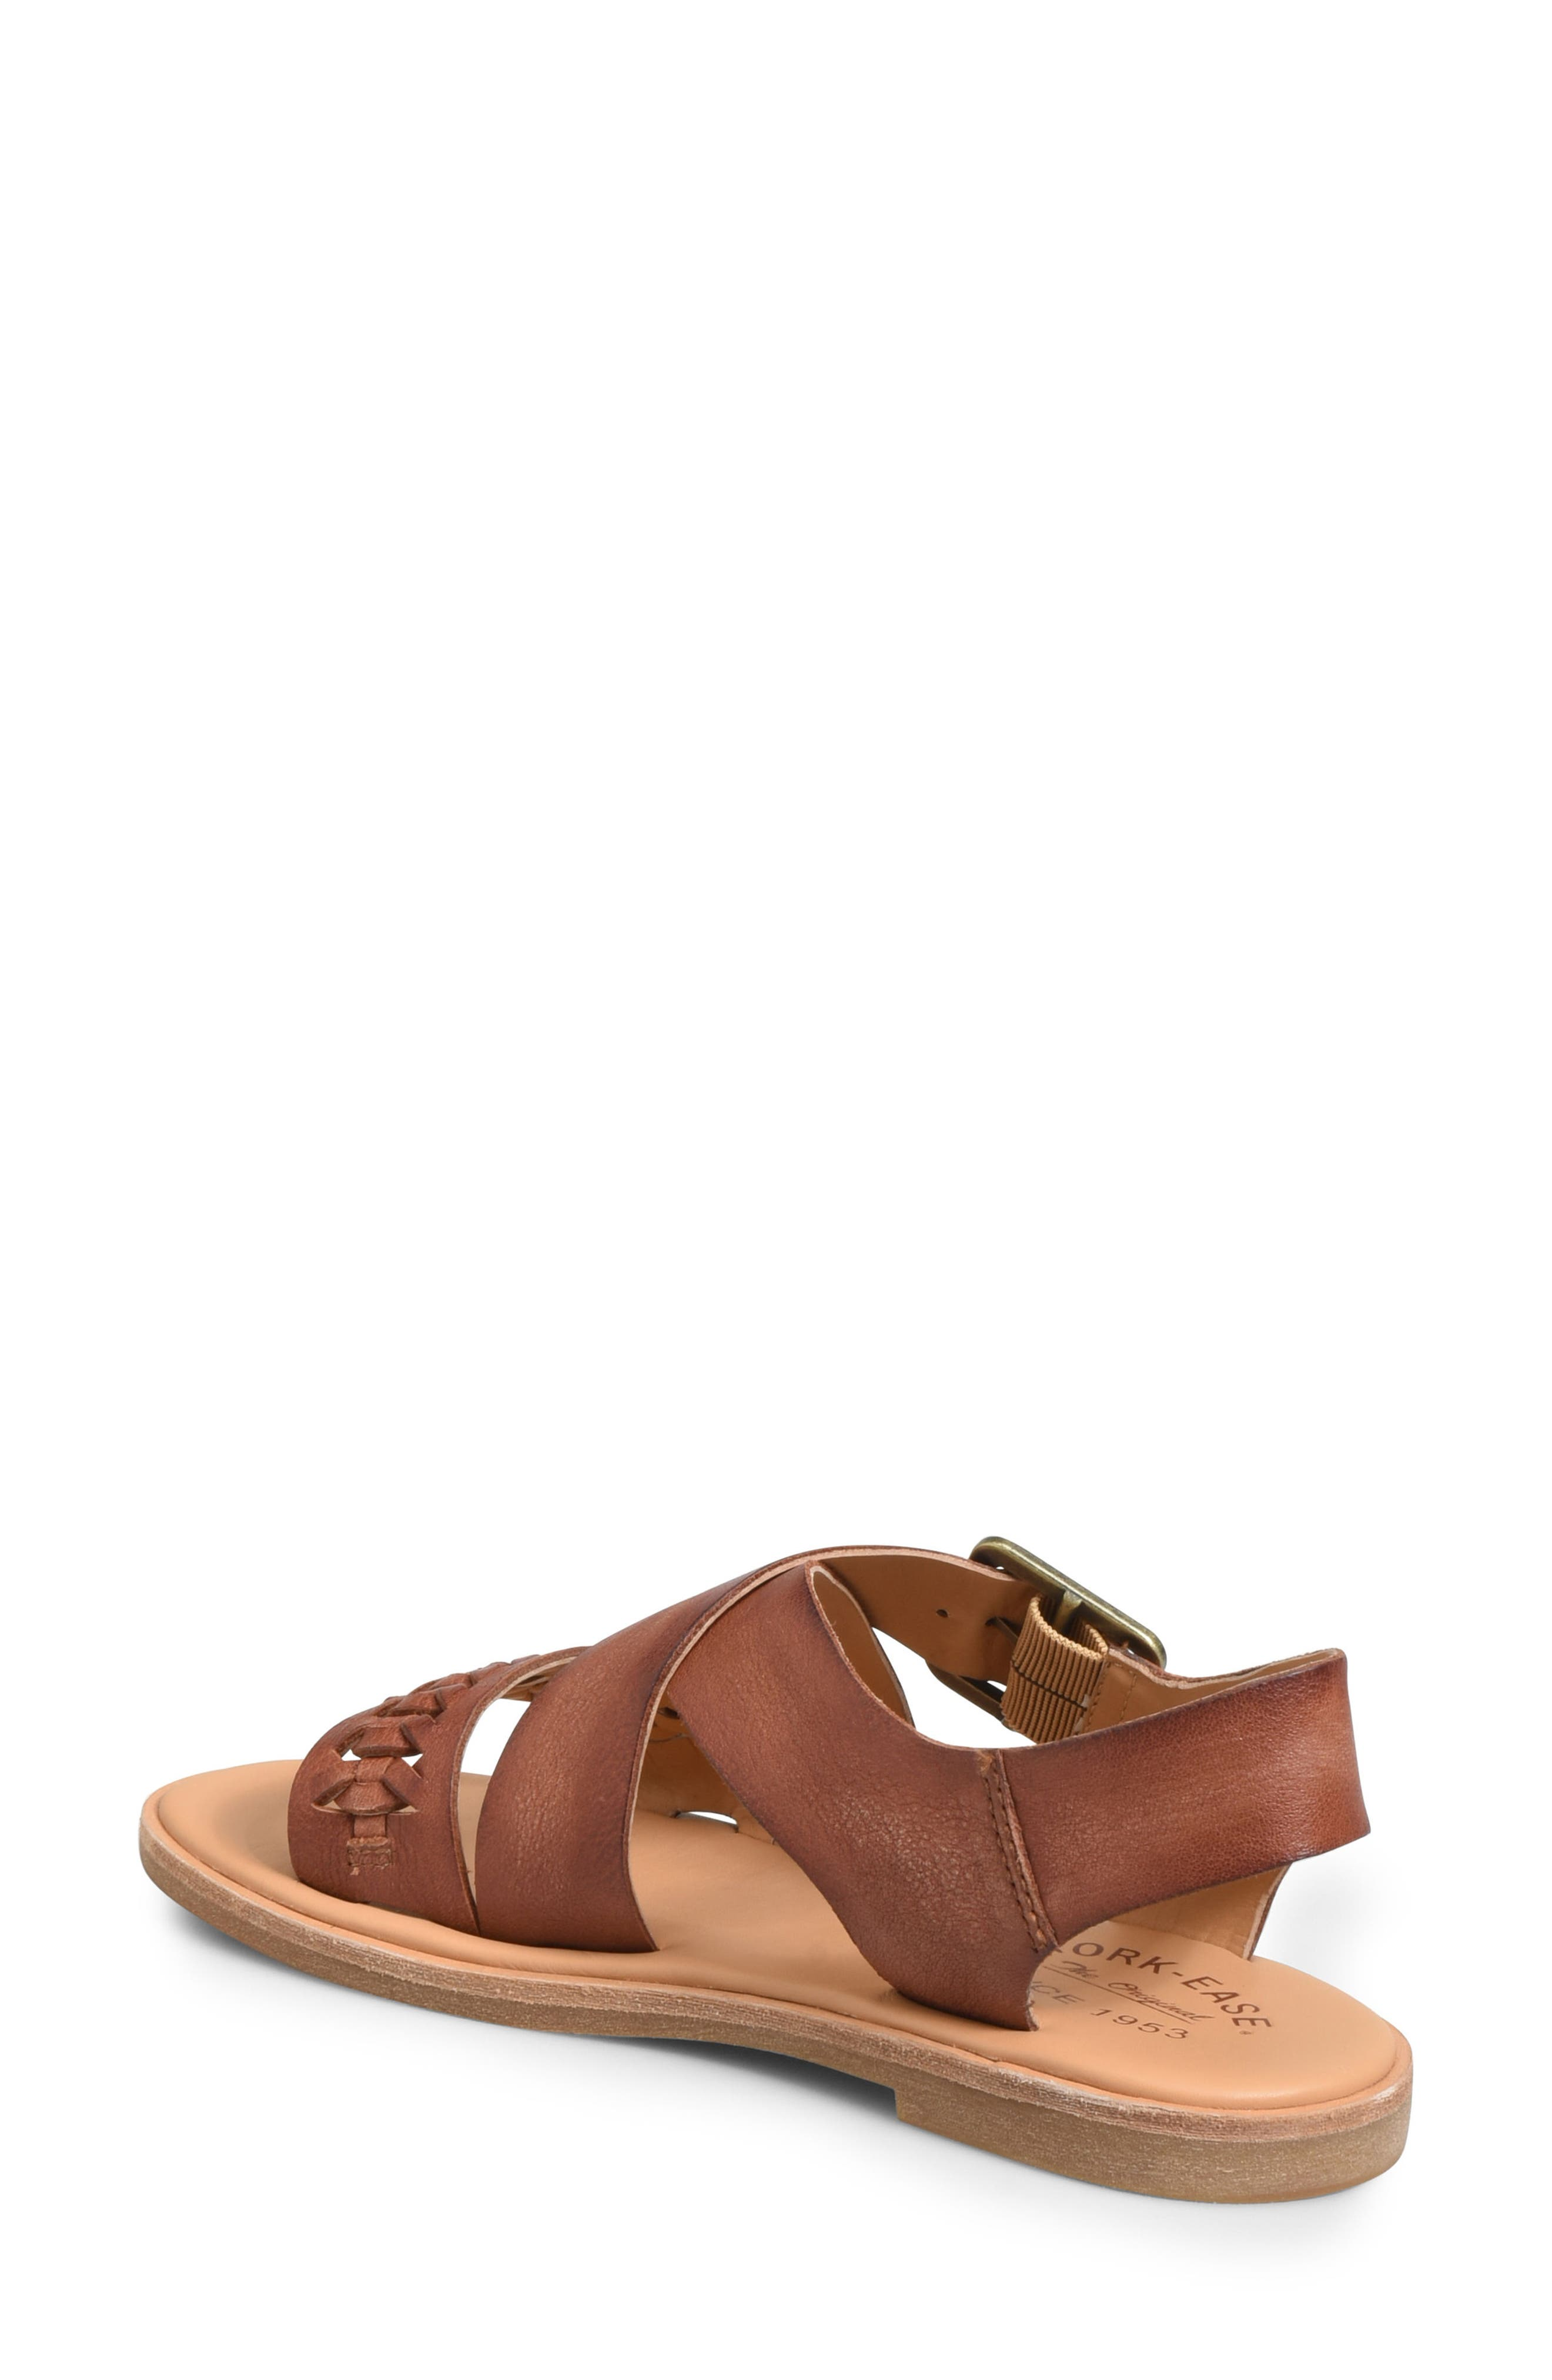 Alternate Image 2  - Kork-Ease® Nara Braid Sandal (Women)